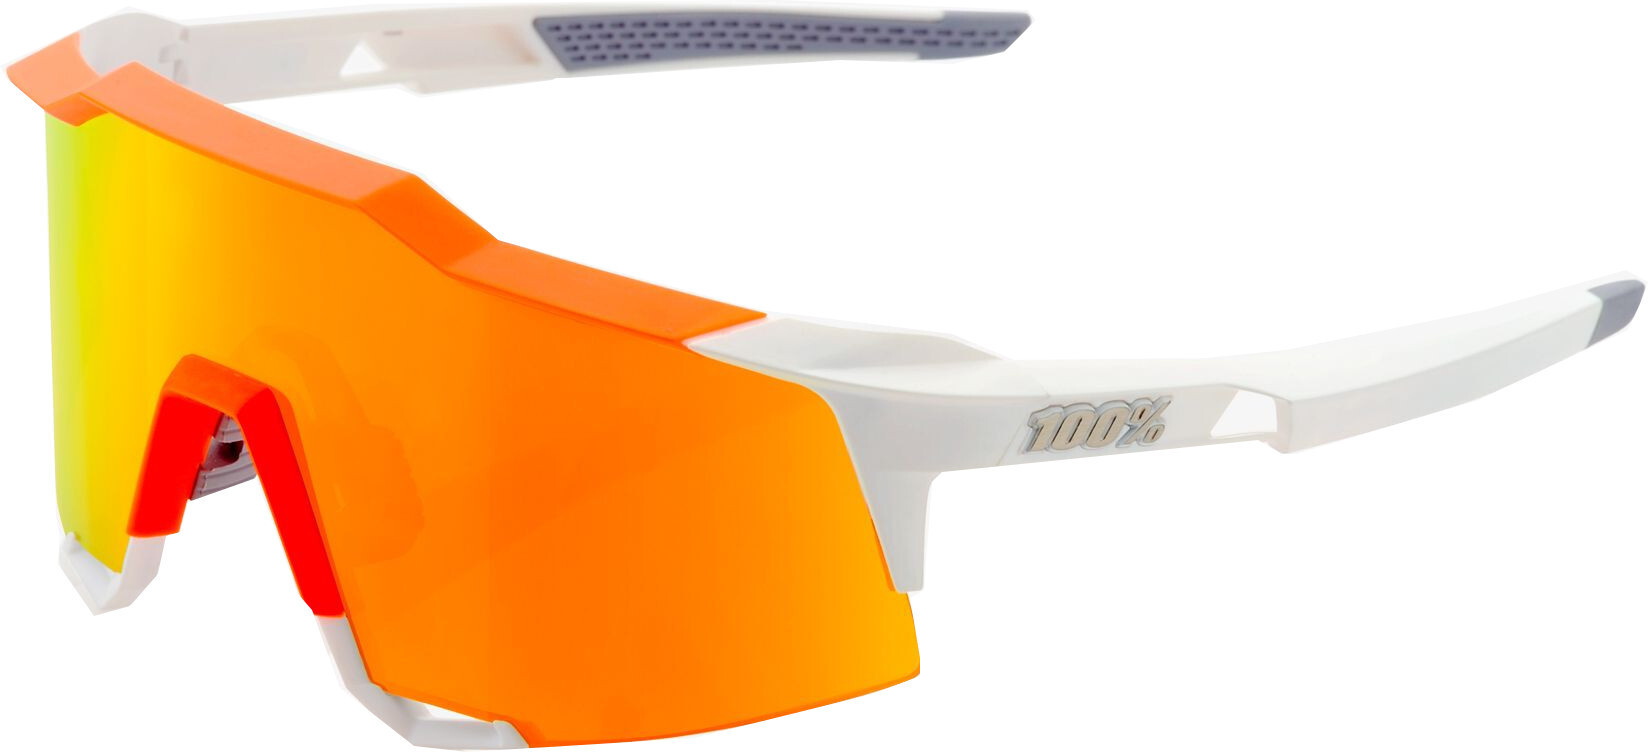 100  Speedcraft HD Multilayer Hiper Glasses Tall White Neon Orange.jpg 6b48842698359